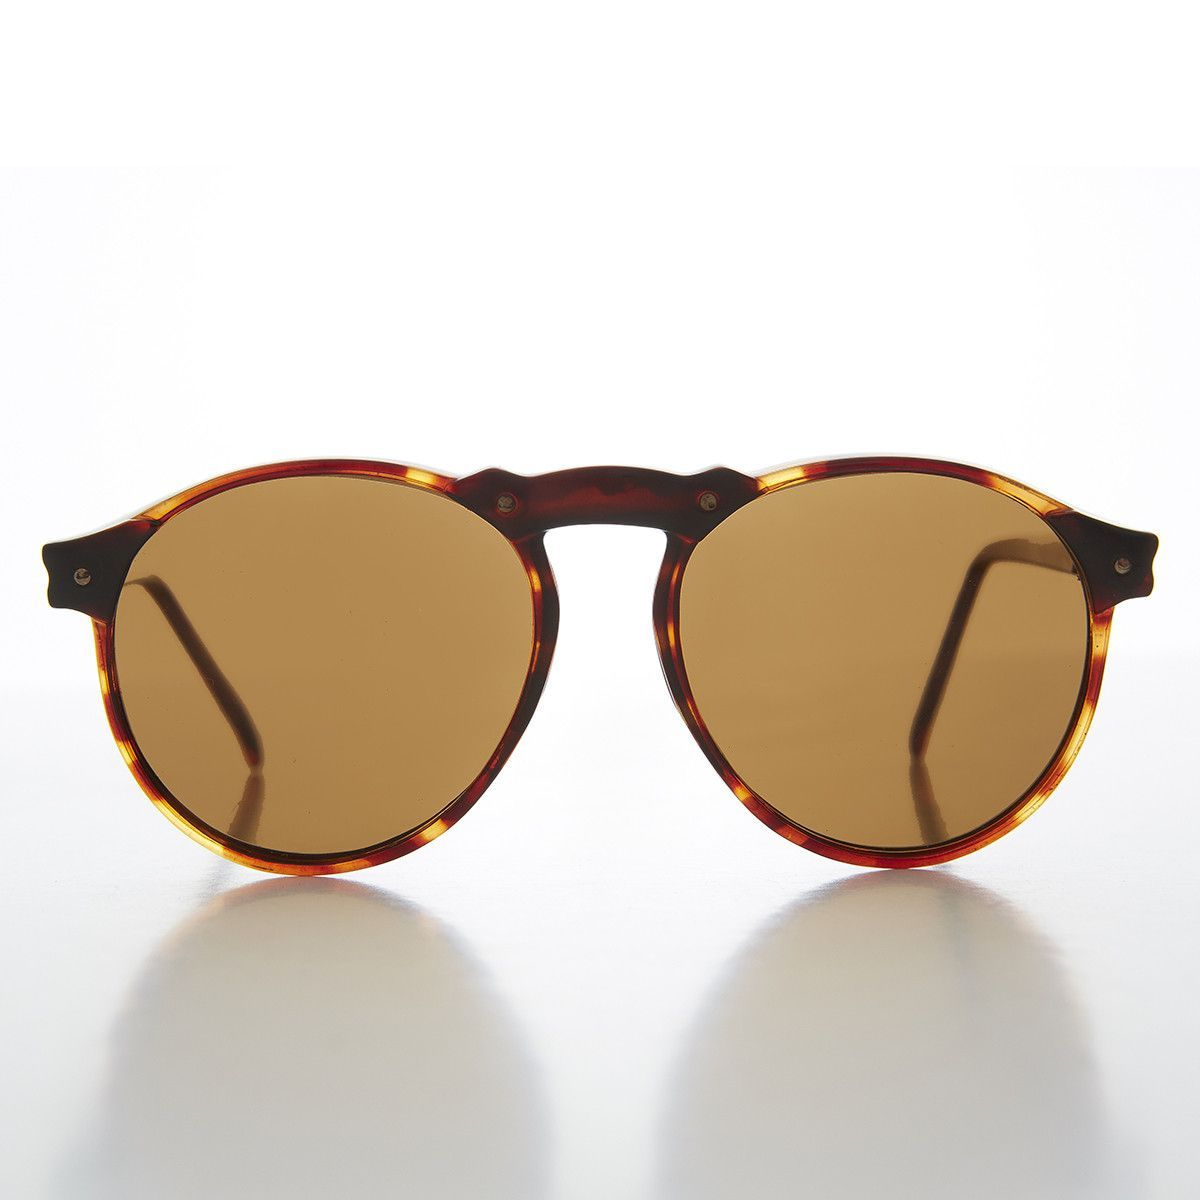 6cfd17a377e P3 Round Vintage Aviator Sunglass with High Arch NOS -TEDDY